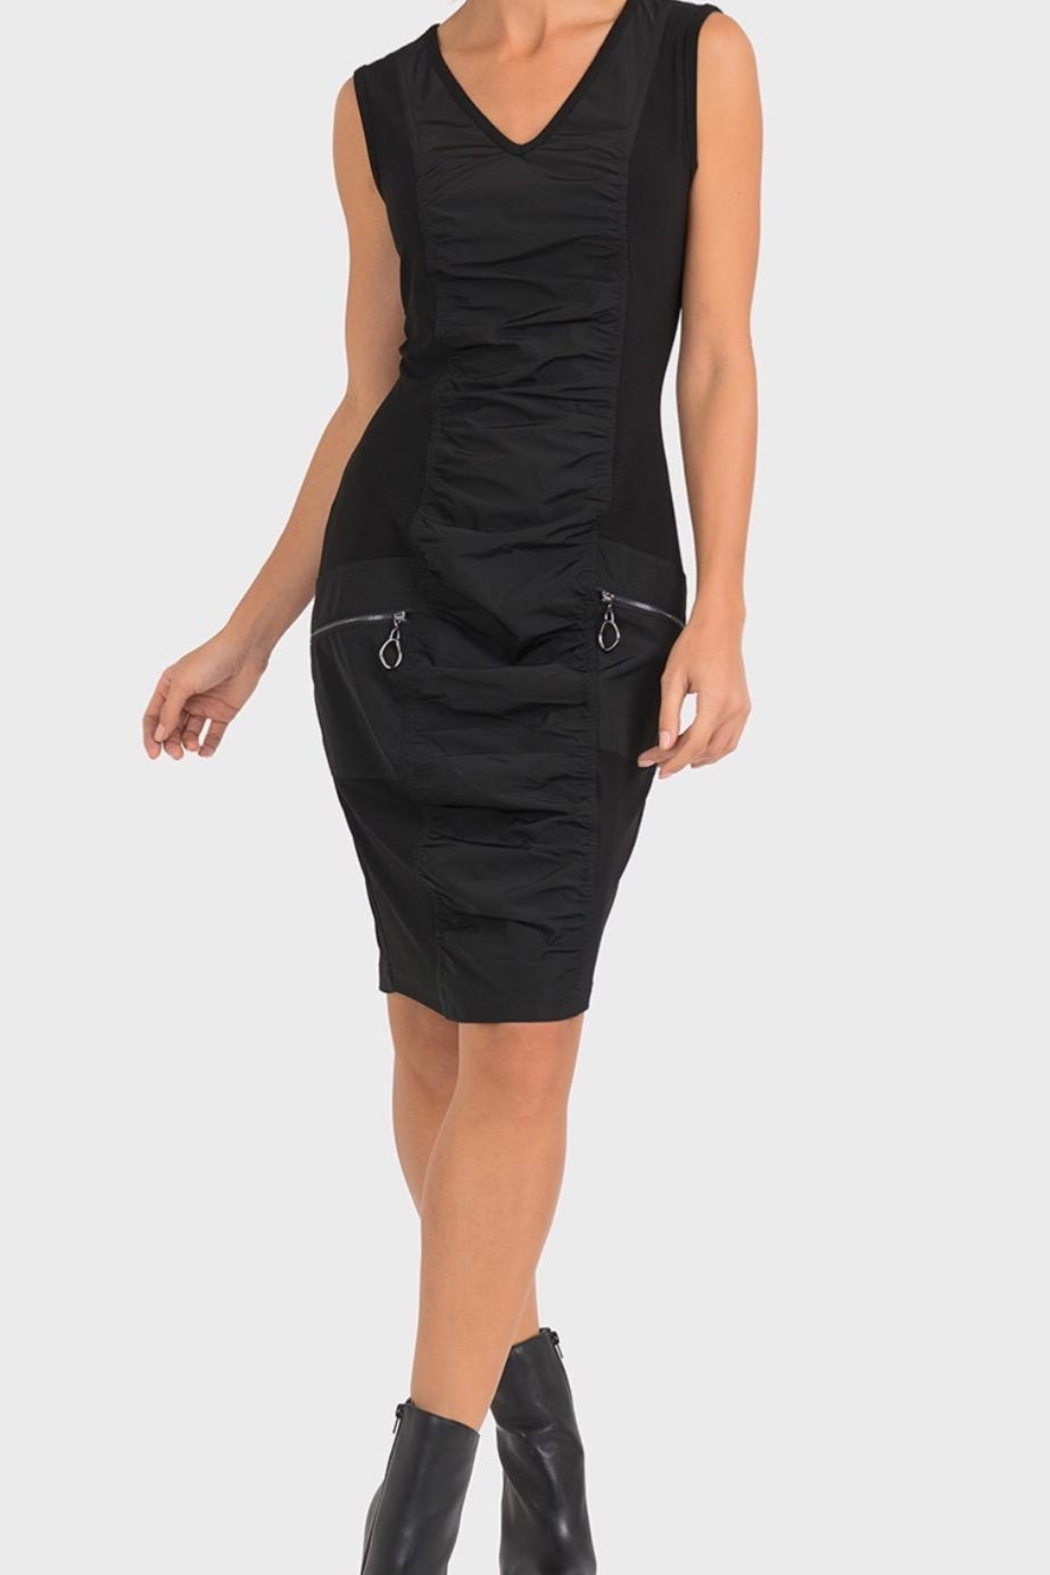 Joseph Ribkoff Edgy Ruched Dress - Front Cropped Image